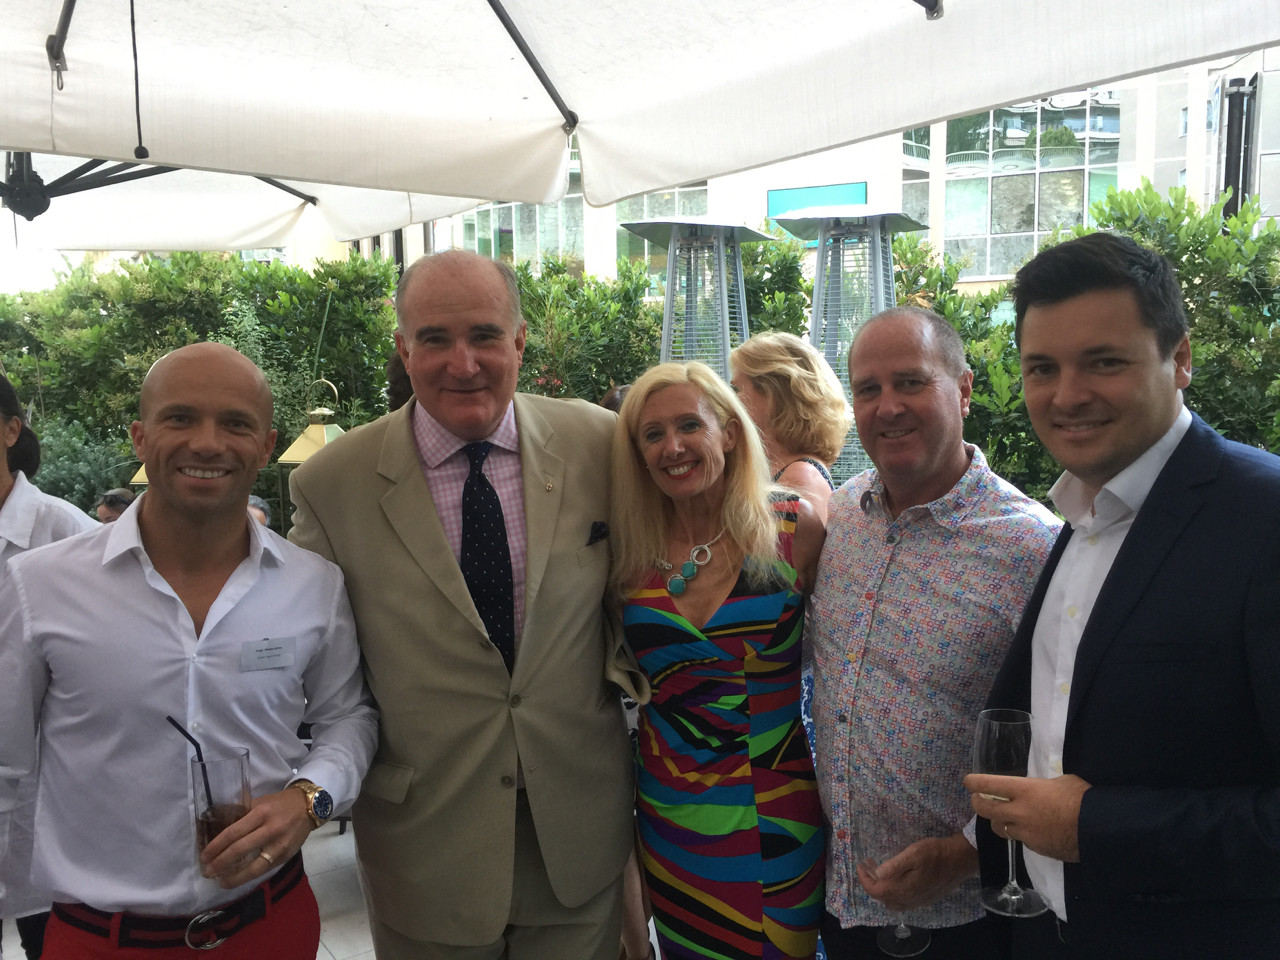 Hugh Wade-Jones, Richard Moir, and Beverly and Brian Holt, and Laurent Natta, Executive Director, Relationship Manager Julius Baer Wealth Management Monaco